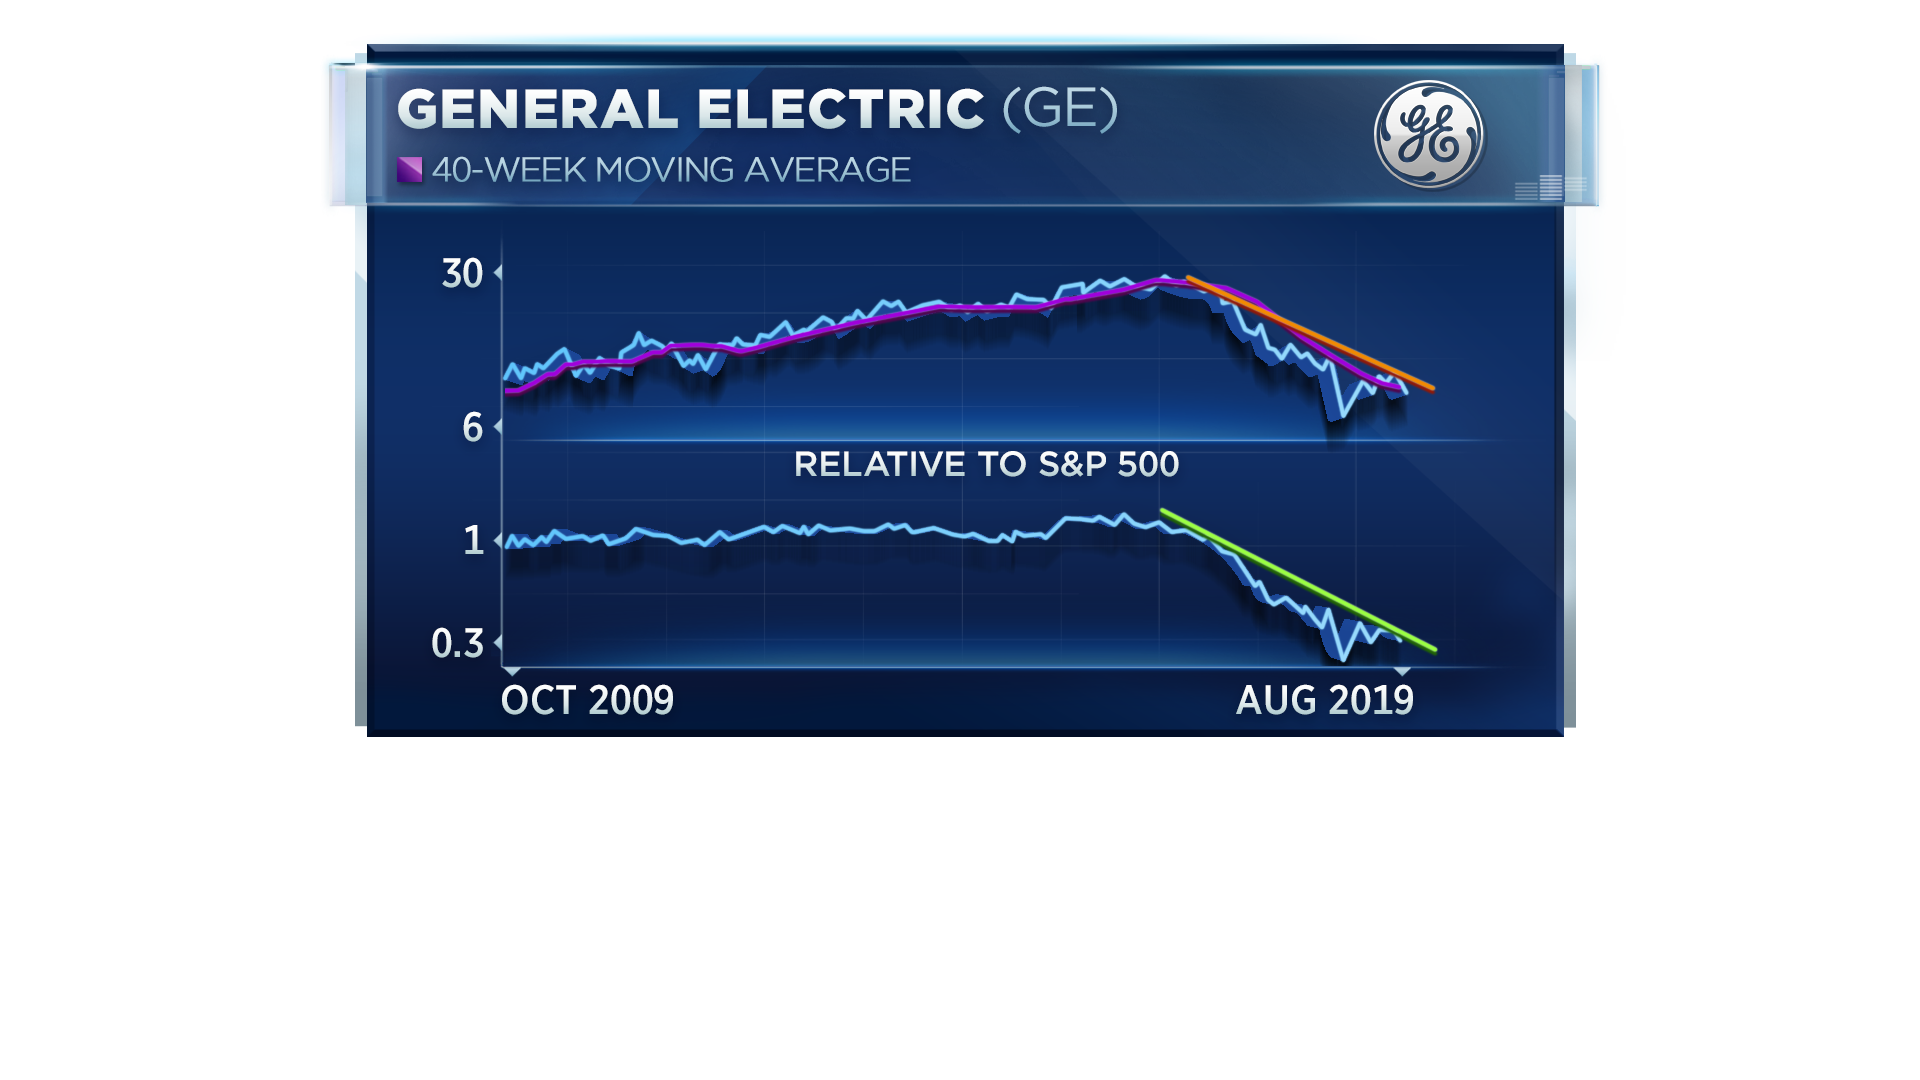 Don't buy the bounce in GE stock, some market watchers warn